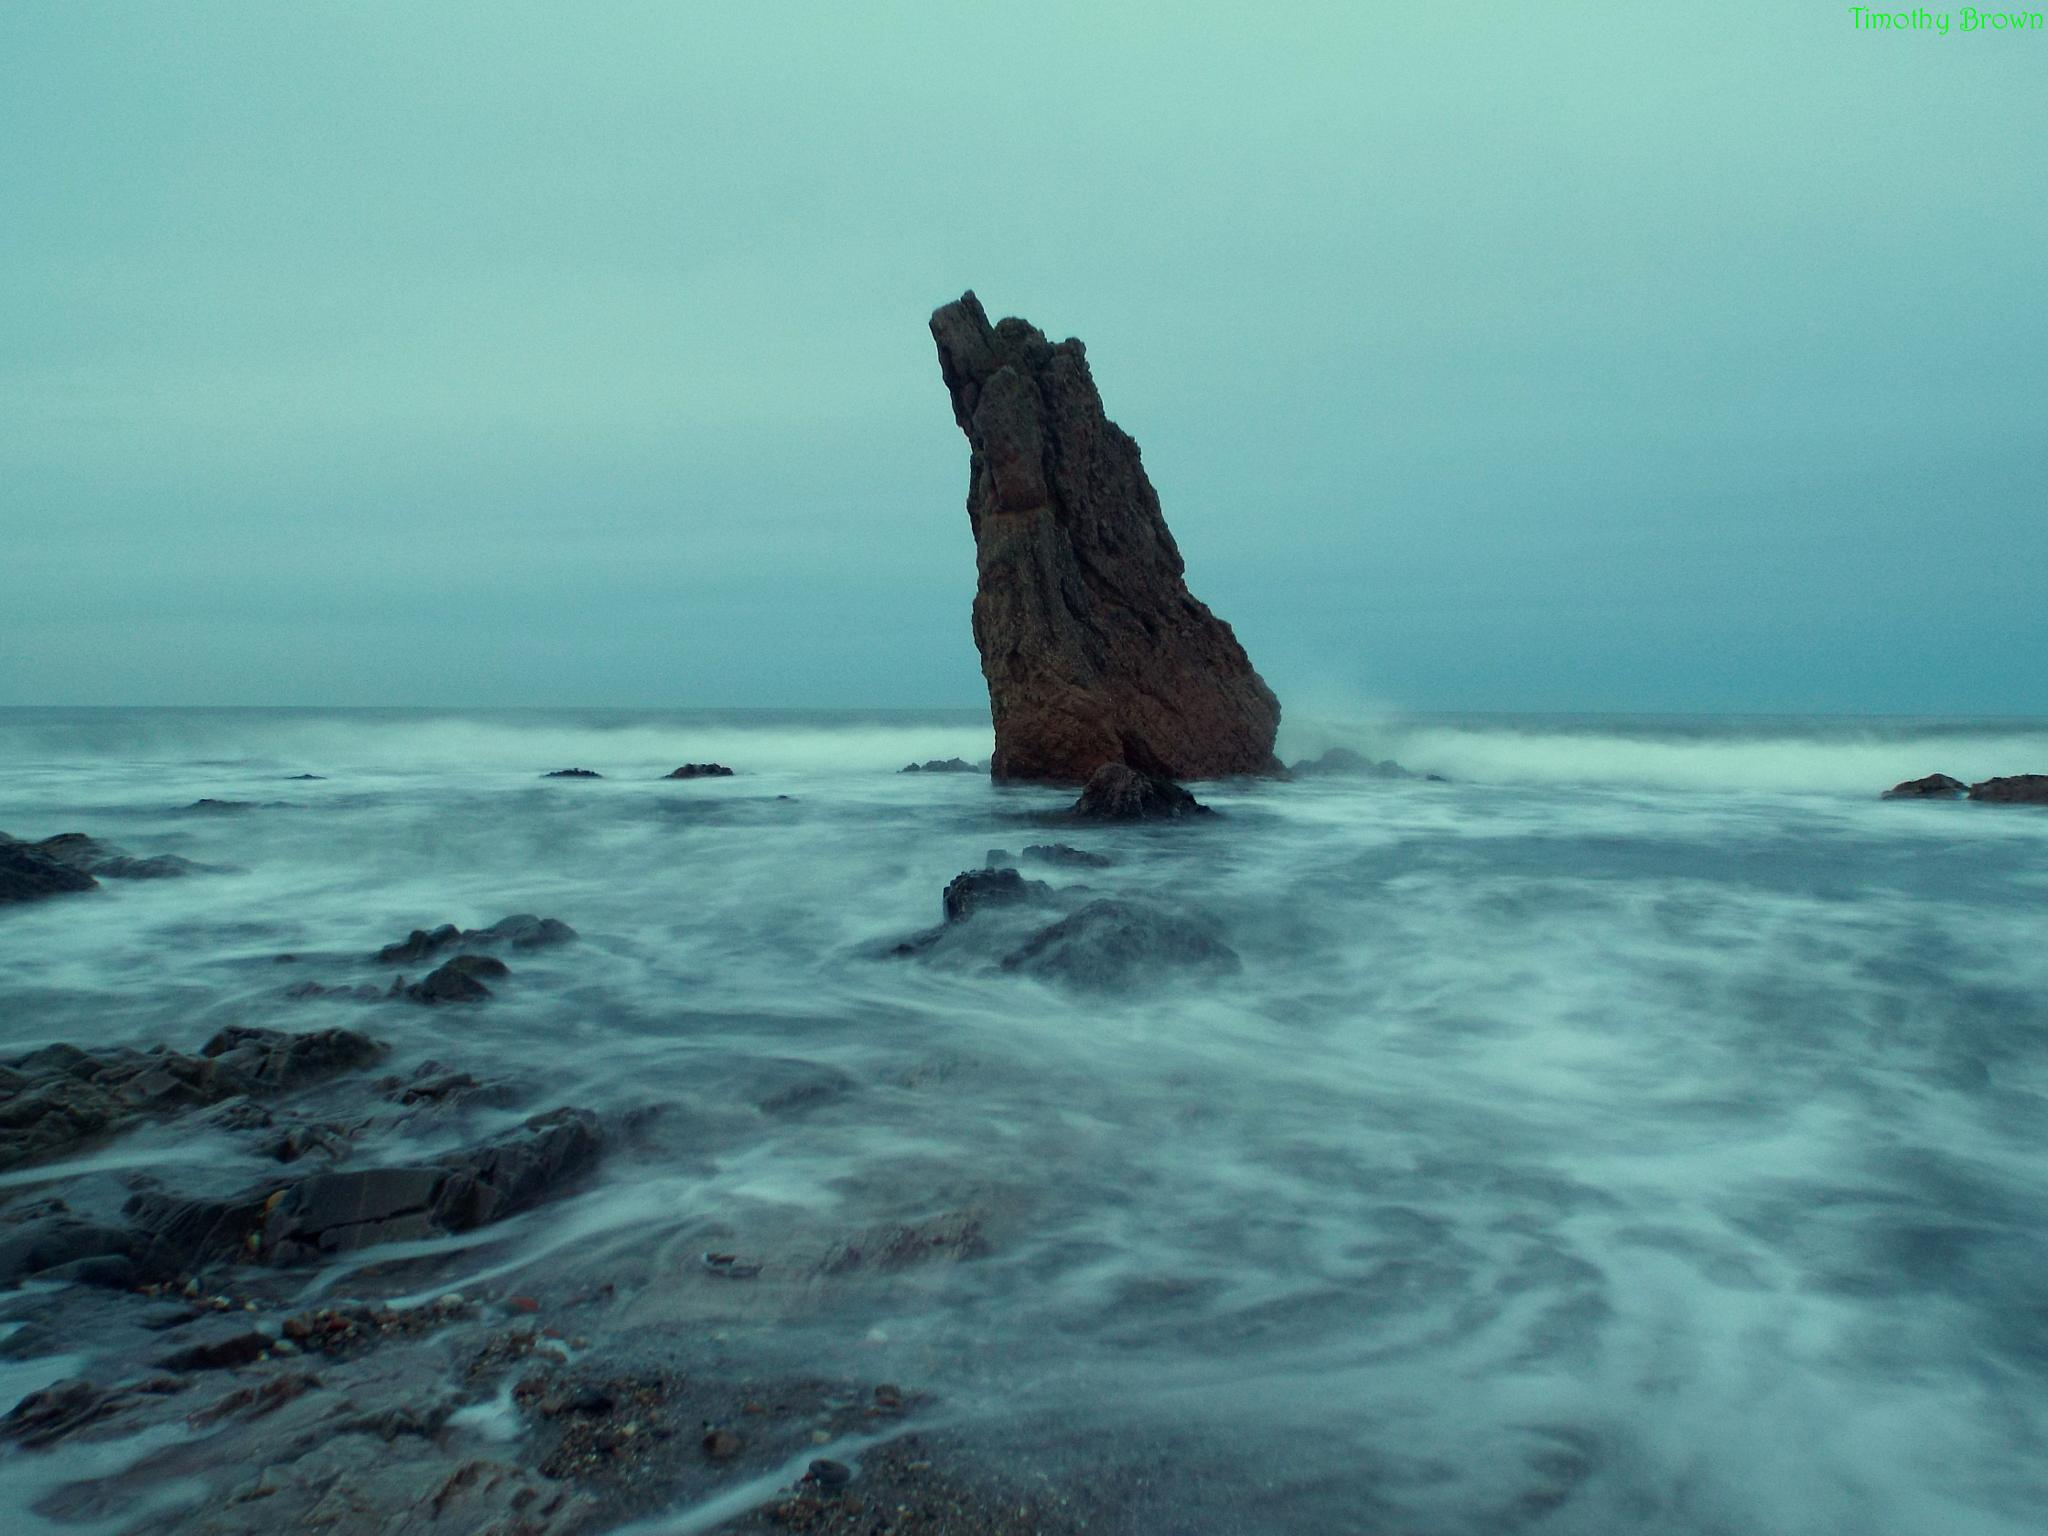 Stormy Waters by Timothy Brown